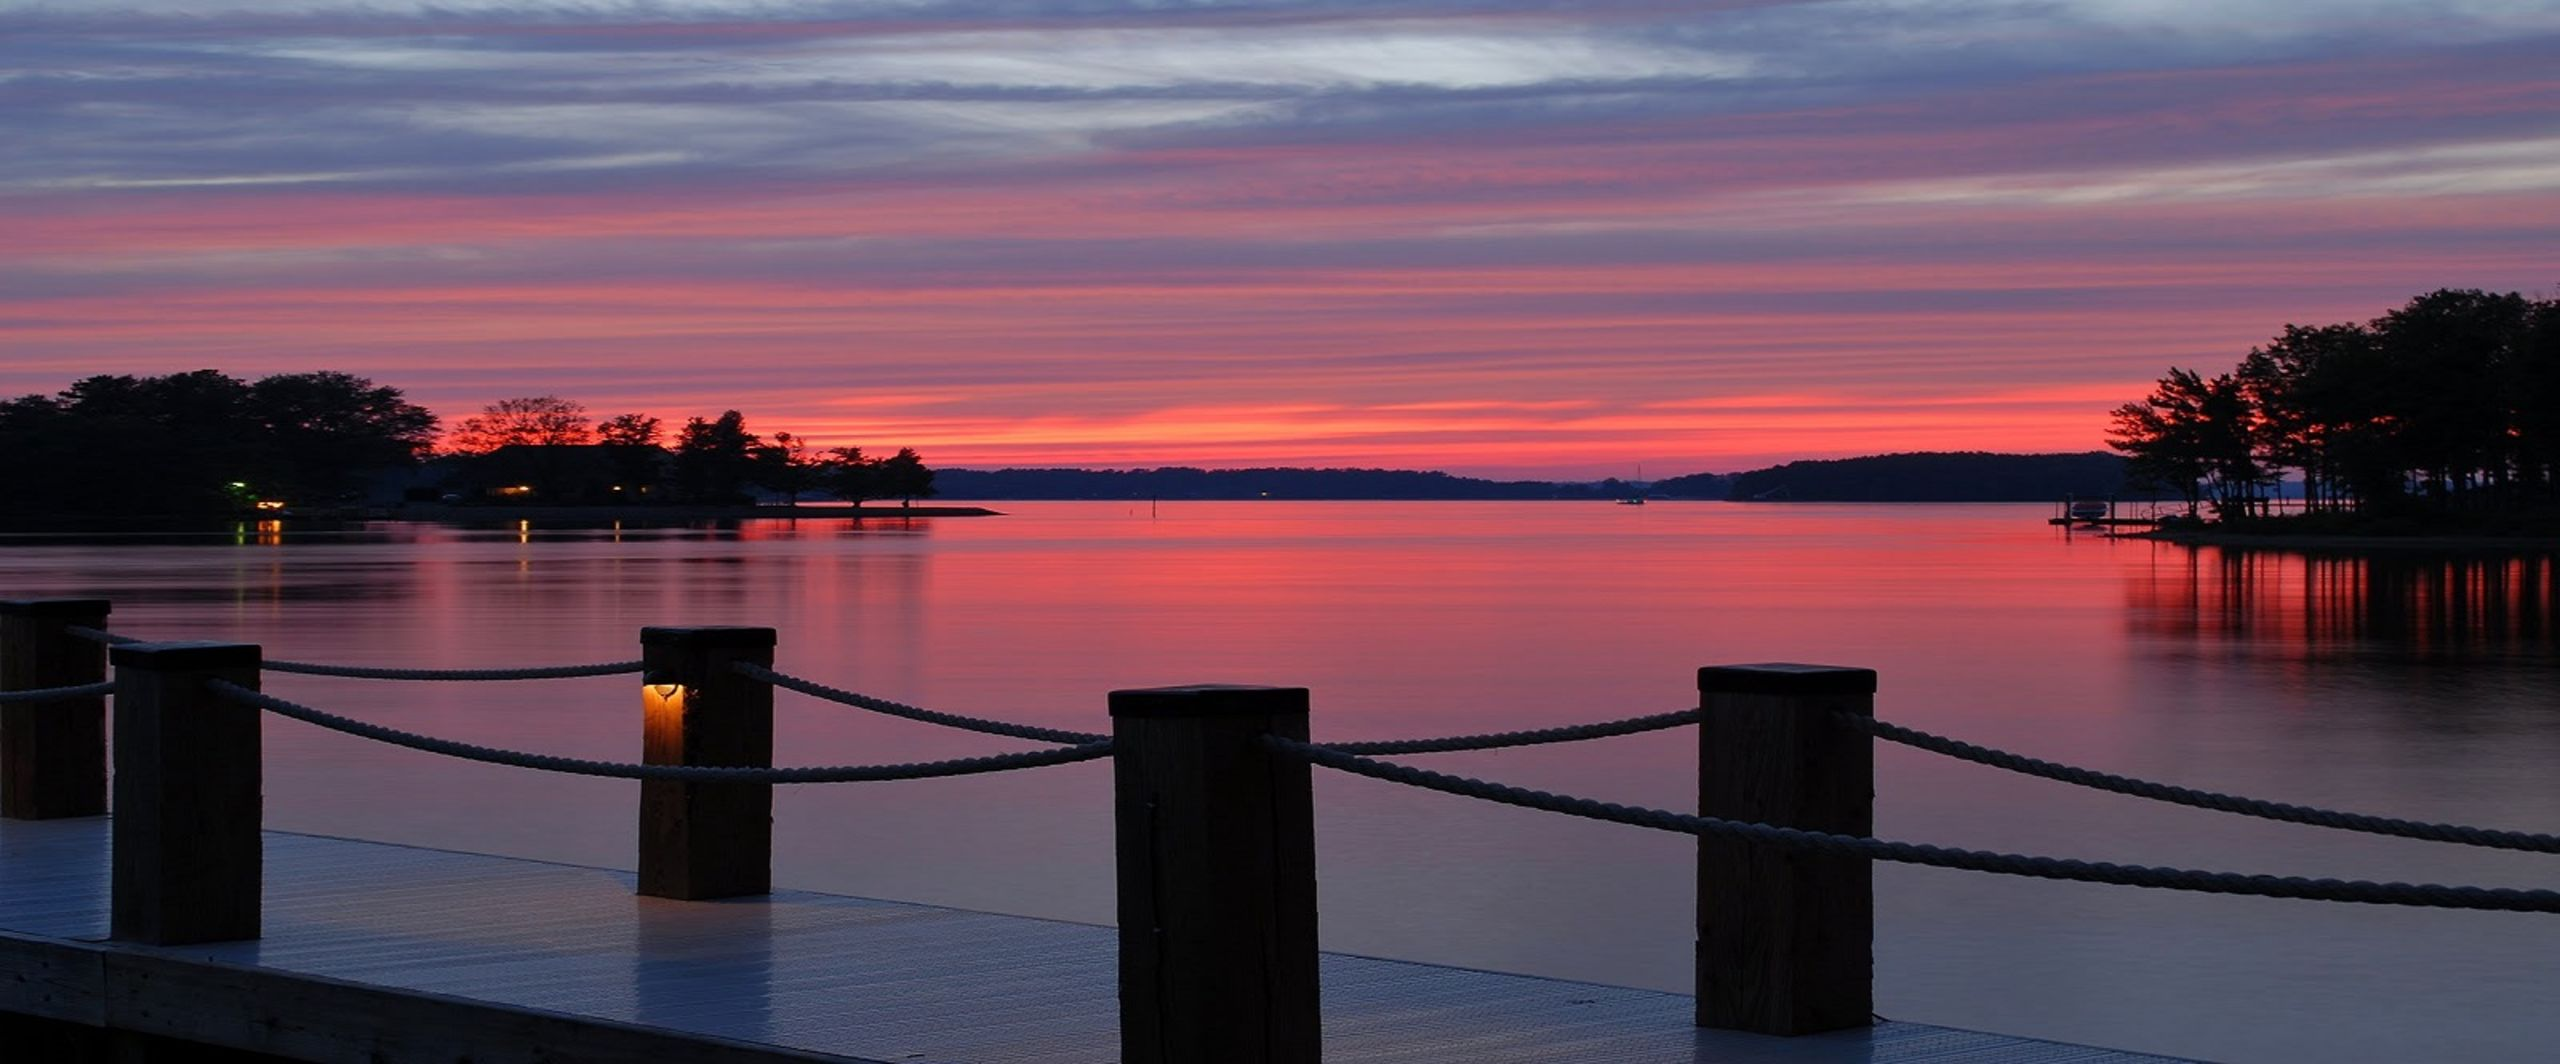 Take Advantage Of All The Beauty Lake Norman Has To Offer